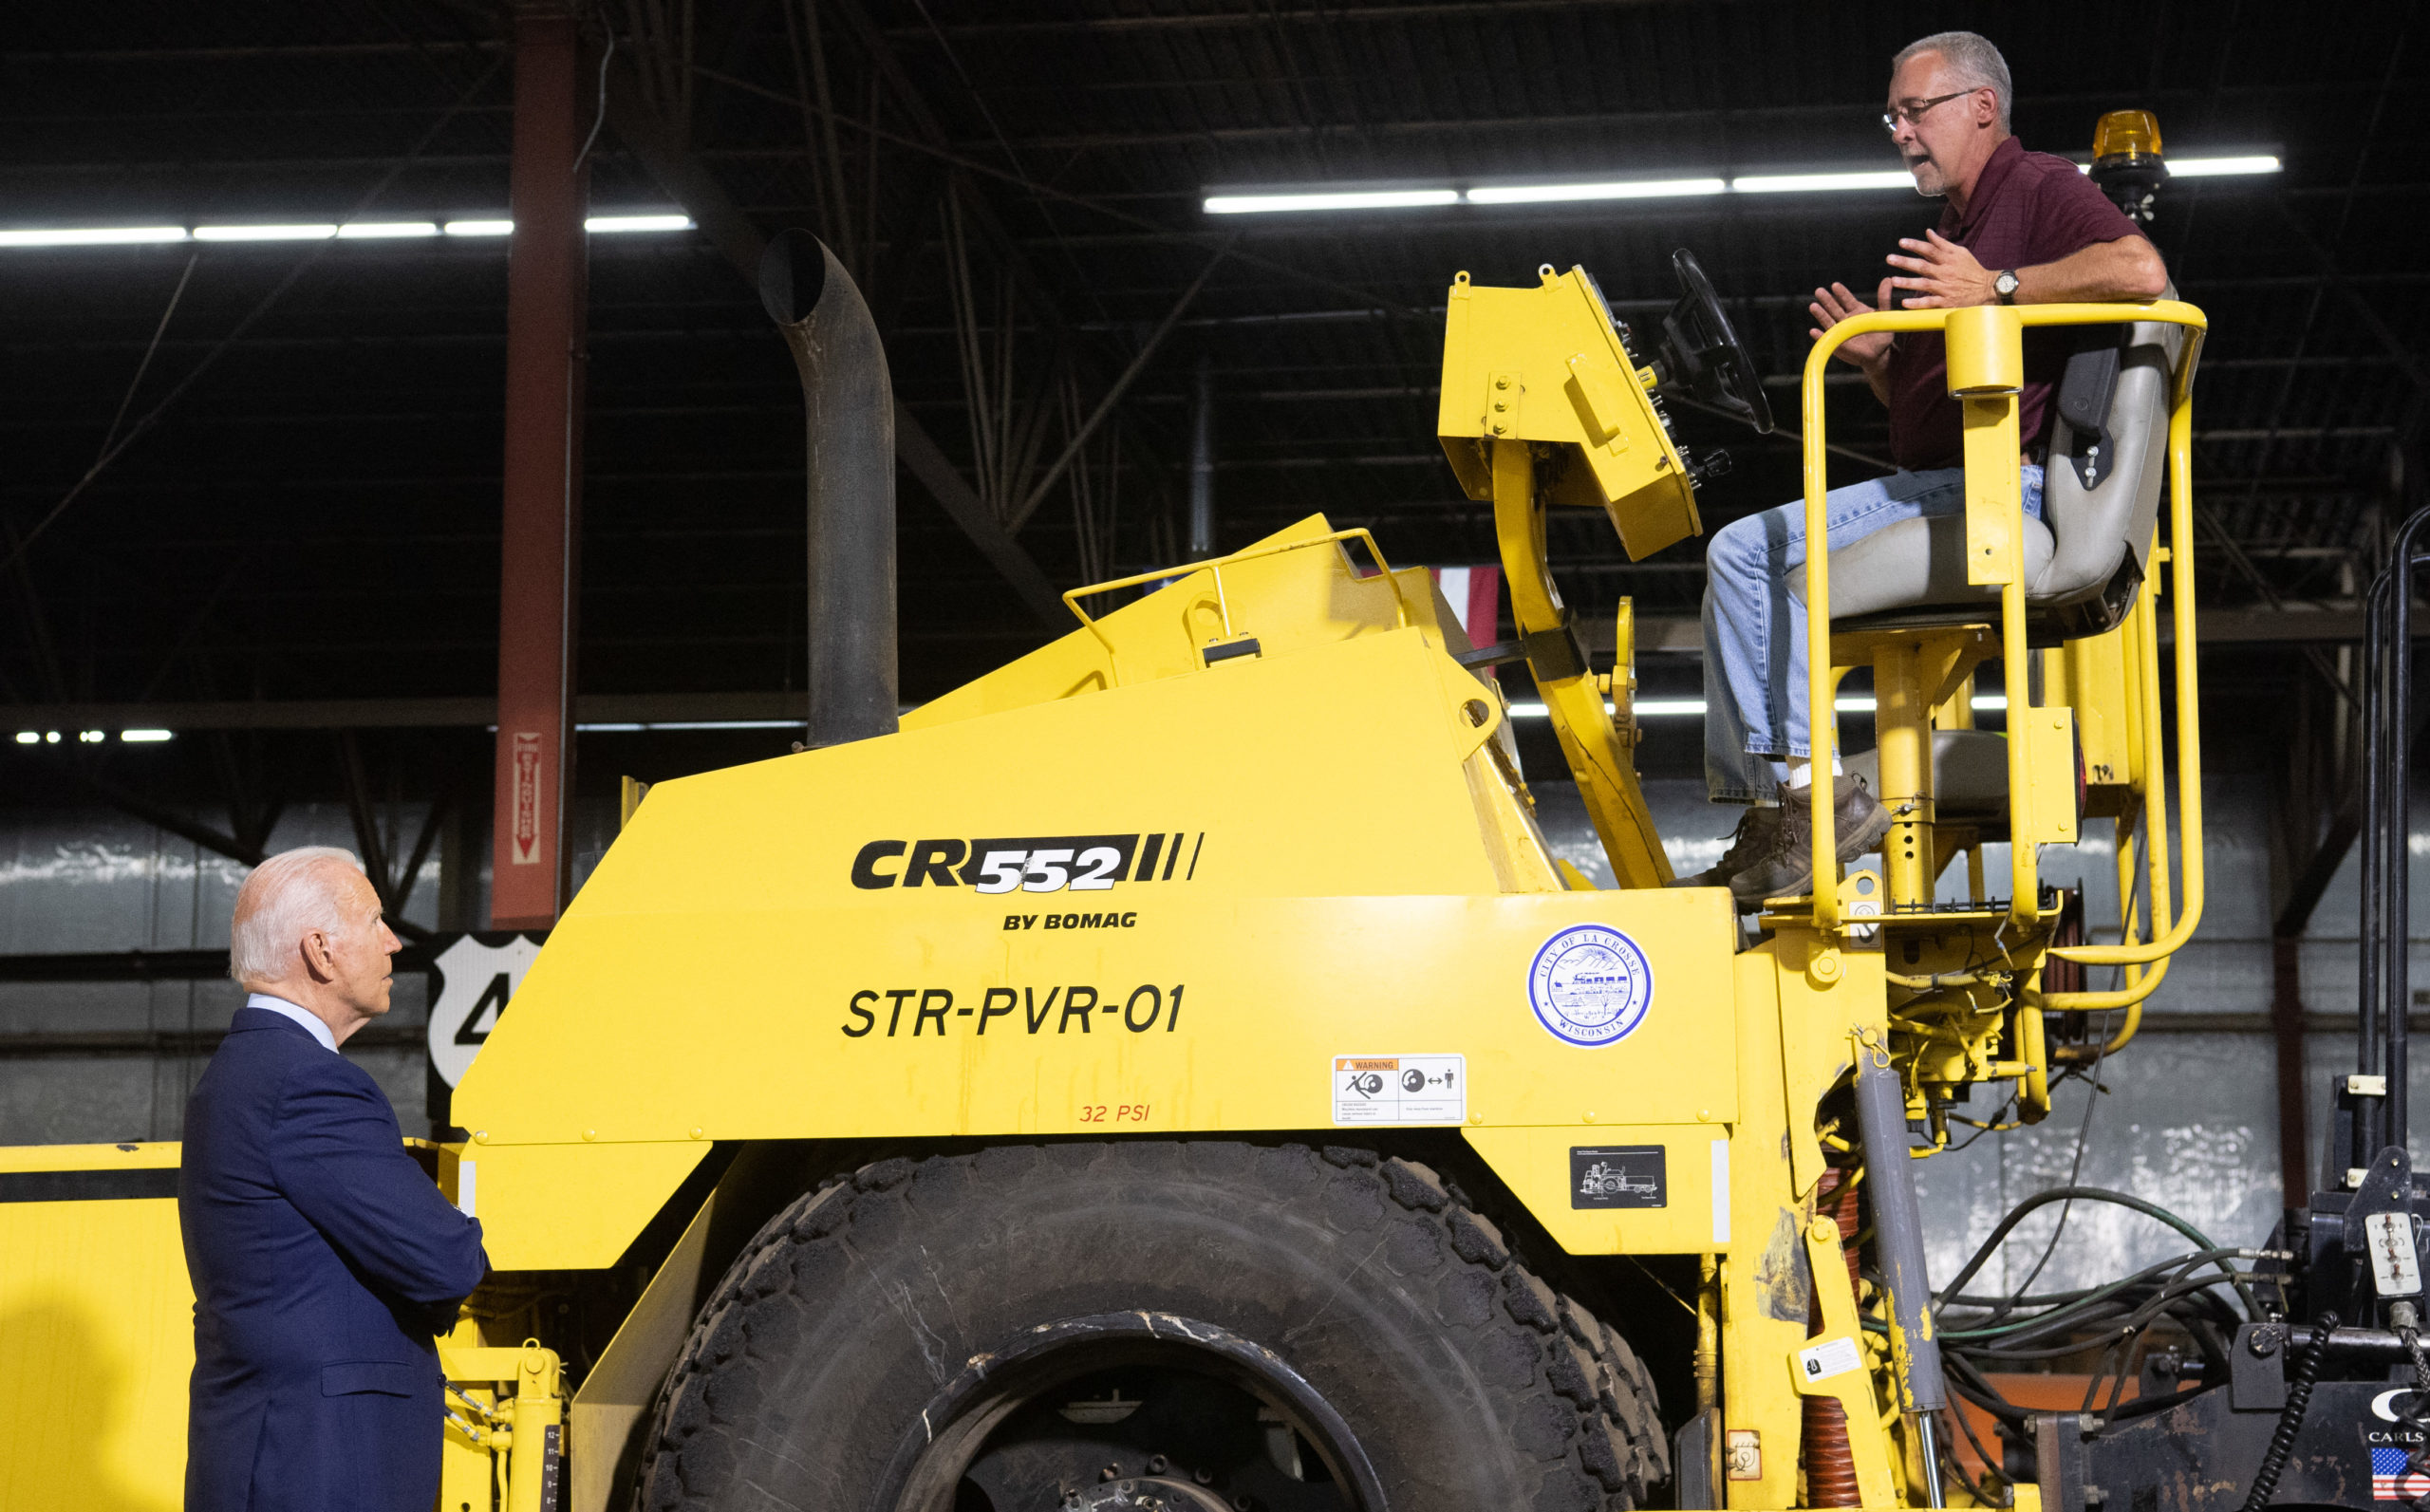 President Joe Biden speaks with a worker who sits on top of a road repair machine during a tour of the La Crosse Municipal Transit Utility in La Crosse, Wisconsin, on Tuesday. (Saul Loeb/AFP via Getty Images)